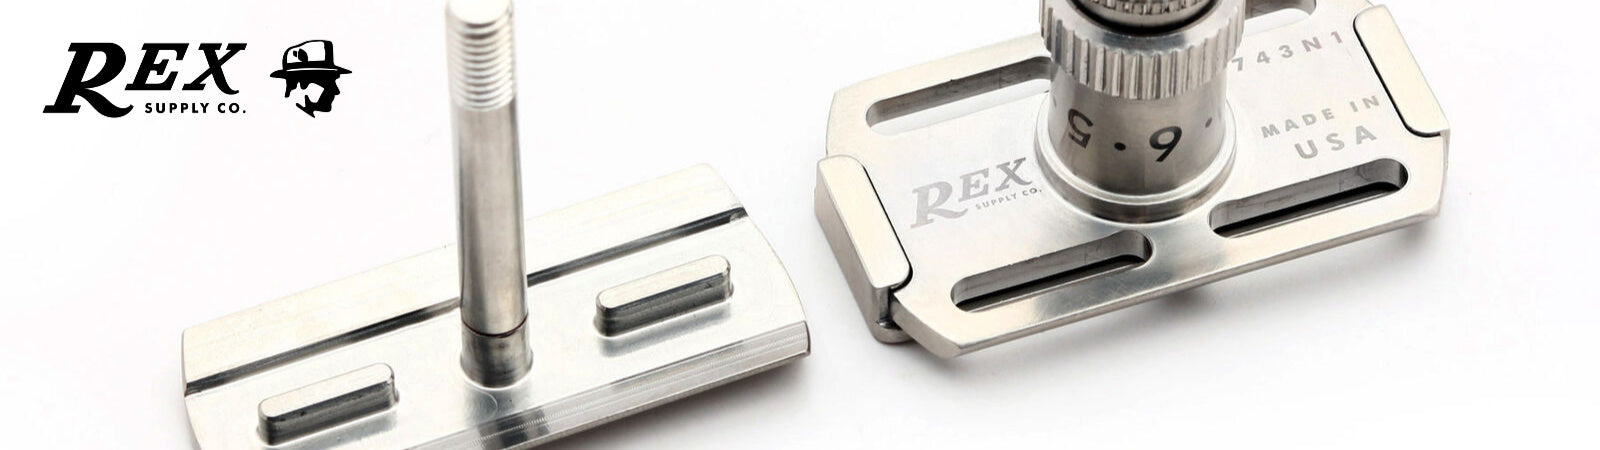 Rex Suppyl Co Razors Available at Sportique.com